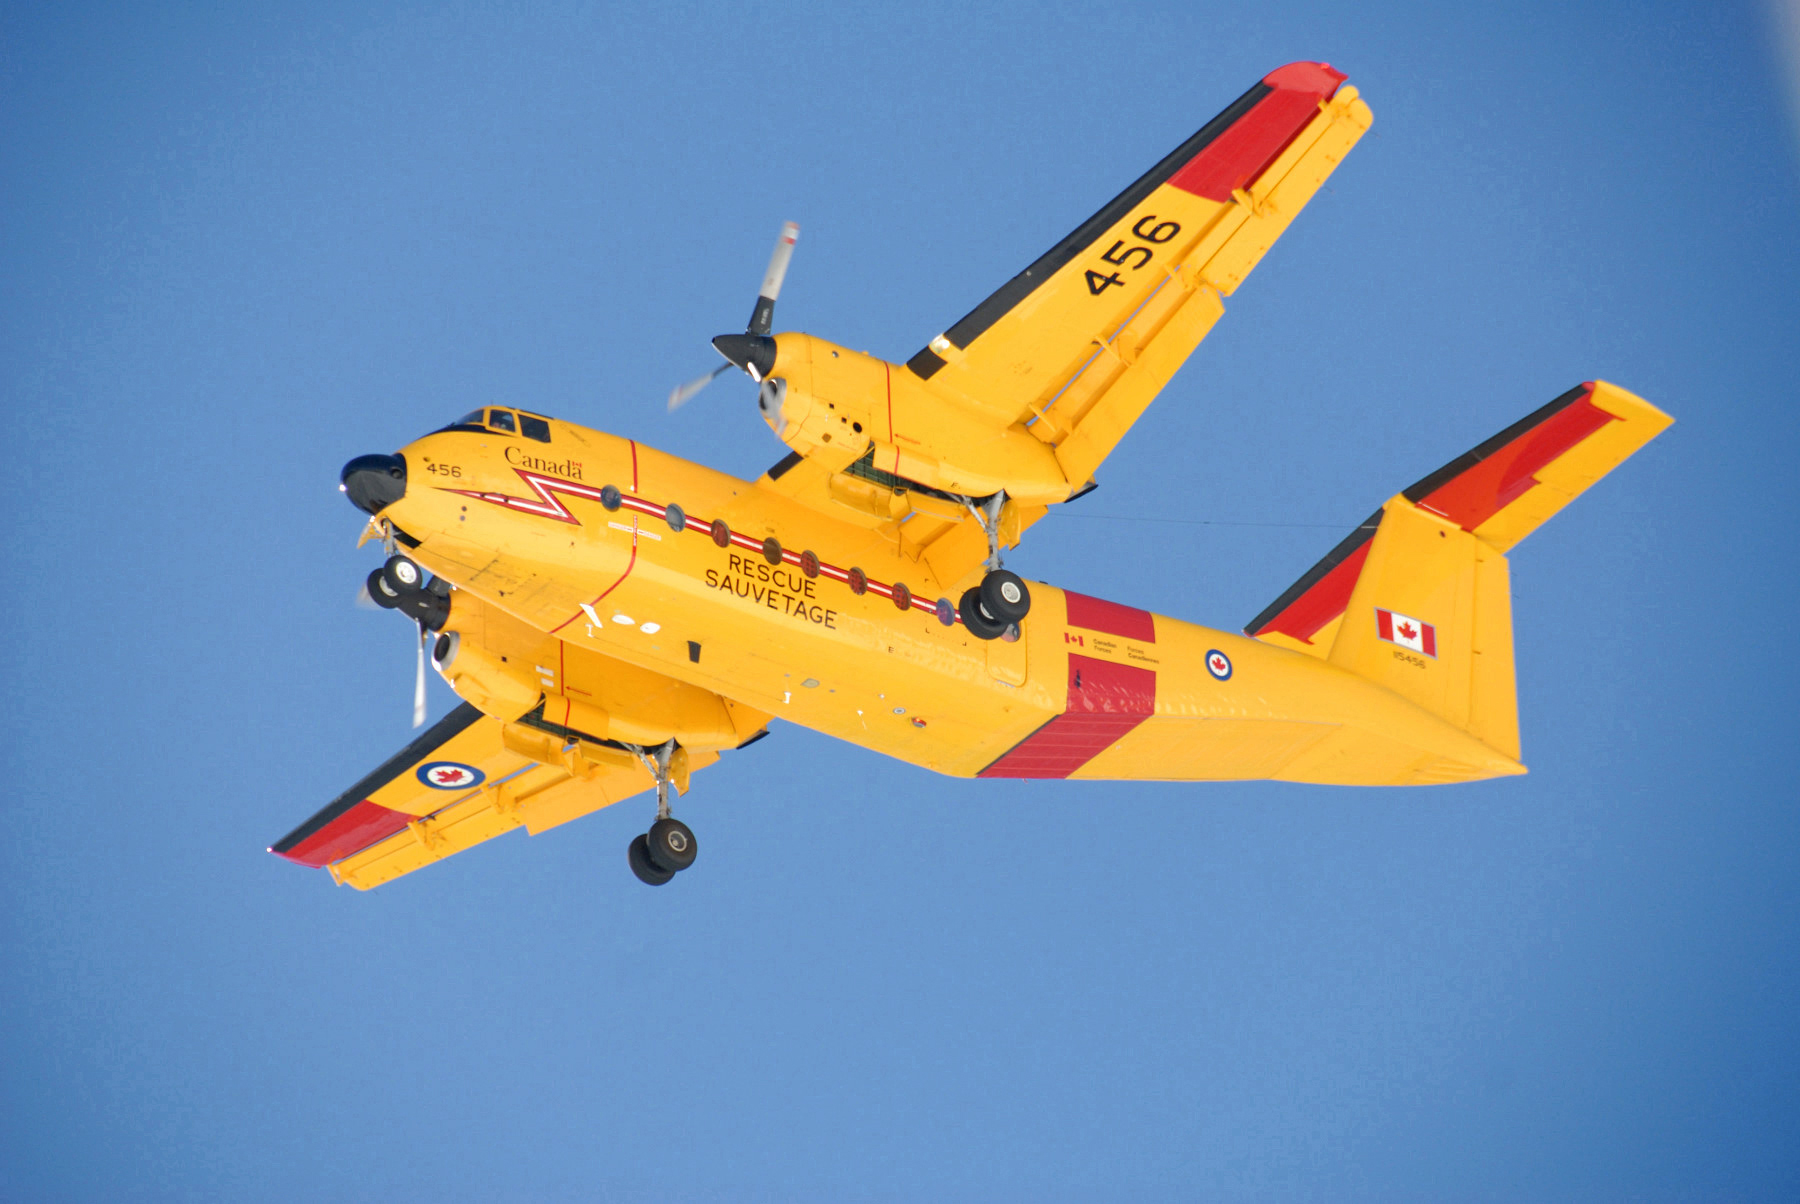 On March 31, 2015, the Government of Canada issued the request for proposal (RFP) for replacing the Canadian Armed Forces' current fleet of fixed-wing search and rescue (FWSAR) aircraft. Proposals will be judged under the Defence Procurement Strategy (DPS). All six Canadian Forces CC-115s are employed by 442 Transport and Rescue Squadron out of Comox, BC. There are currently two different fixed-wing aircraft performing search and rescue in Canada: The CC-130 Hercules performs many of Eastern Canada's SAR operations, while six CC-115 Buffalos (pictured) are employed by 442 Transport and Rescue Squadron out of Comox, BC.The squadron is responsible for a SAR zone stretching from the BC–Washington border to the Arctic, and from the Rocky Mountains to 1,200 km out over the Pacific Ocean. With a maximum load of 2,727 kg—or 41 fully equipped soldiers—the Buffalo has an operational range of 2,240 km. (DND)